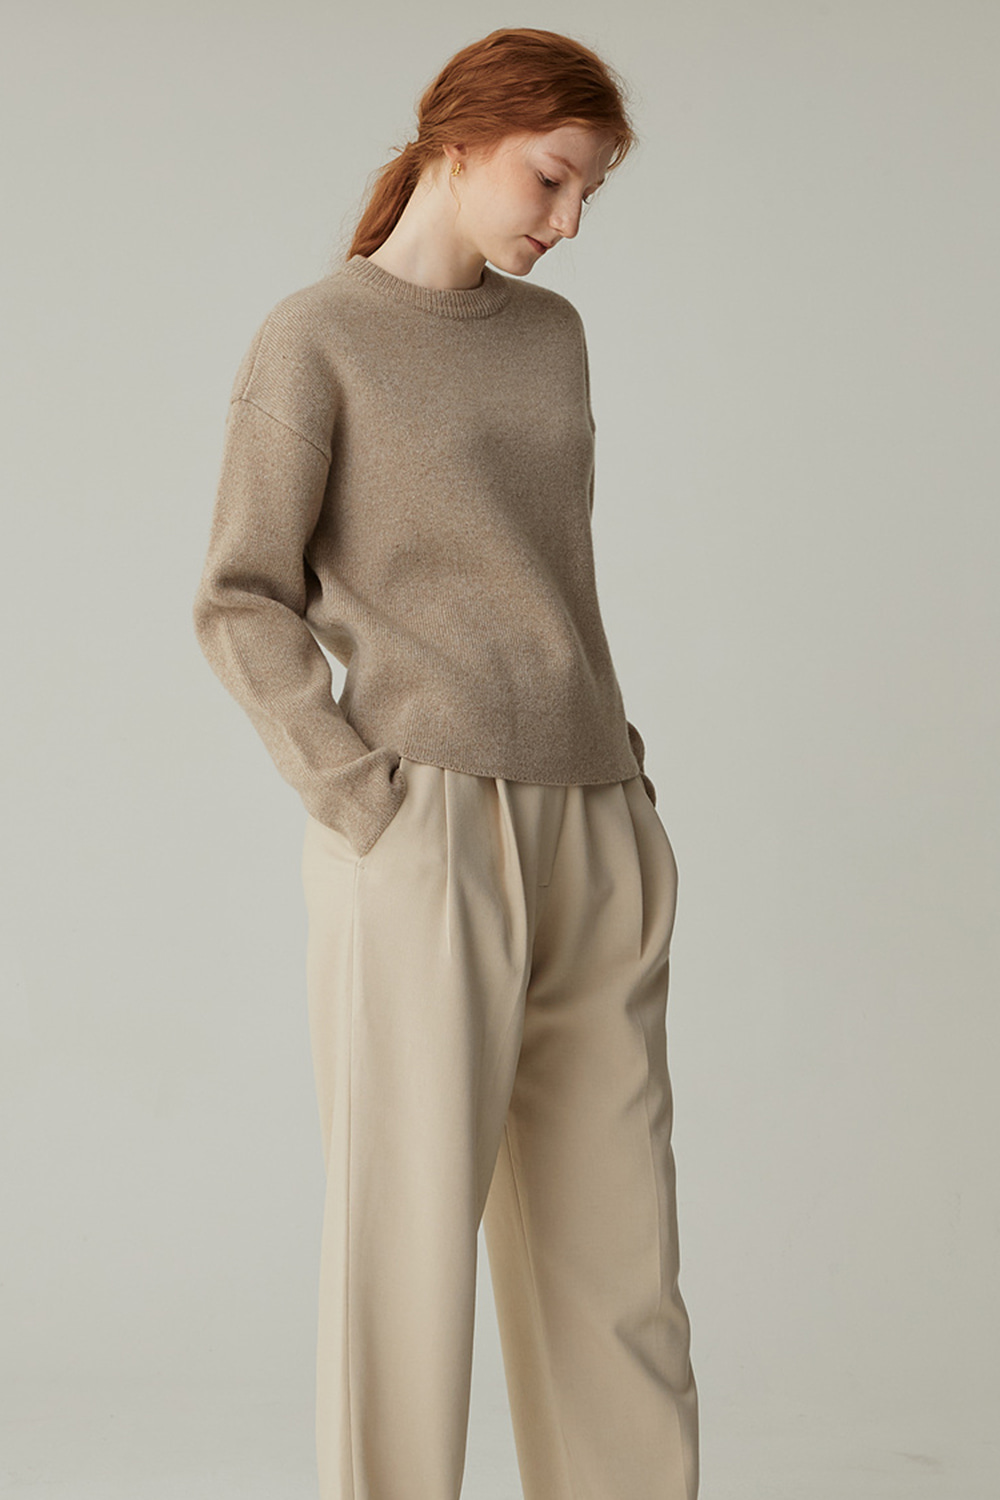 AIR WOOL KNIT (M/LINEN)